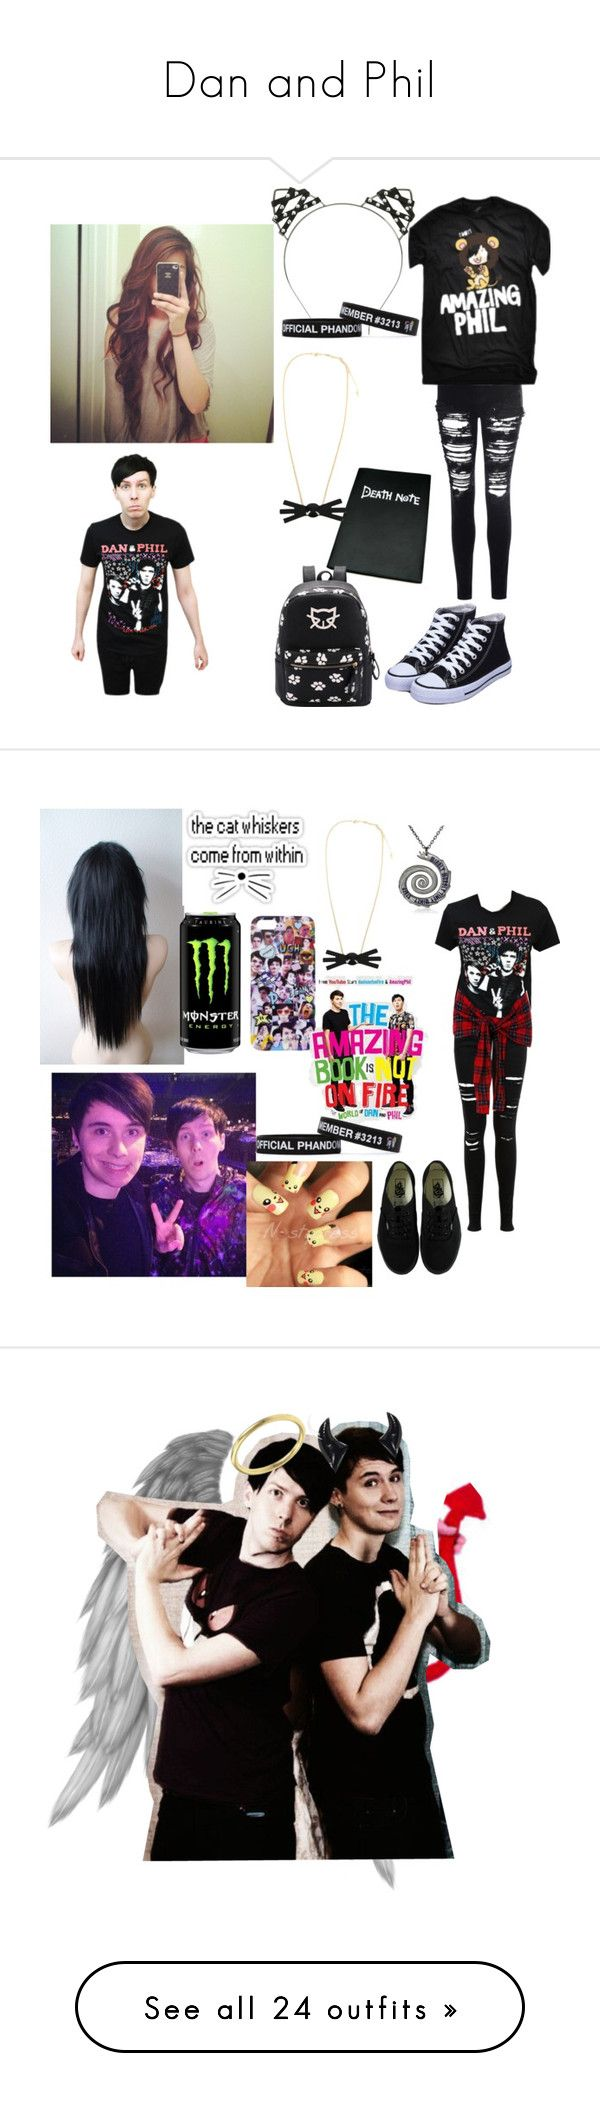 """Dan and Phil"" by thelastamericangirl ❤ liked on Polyvore featuring home, home decor, office accessories, Glamorous, Miss Selfridge, Vans, art, Madewell, Converse and AG Adriano Goldschmied"